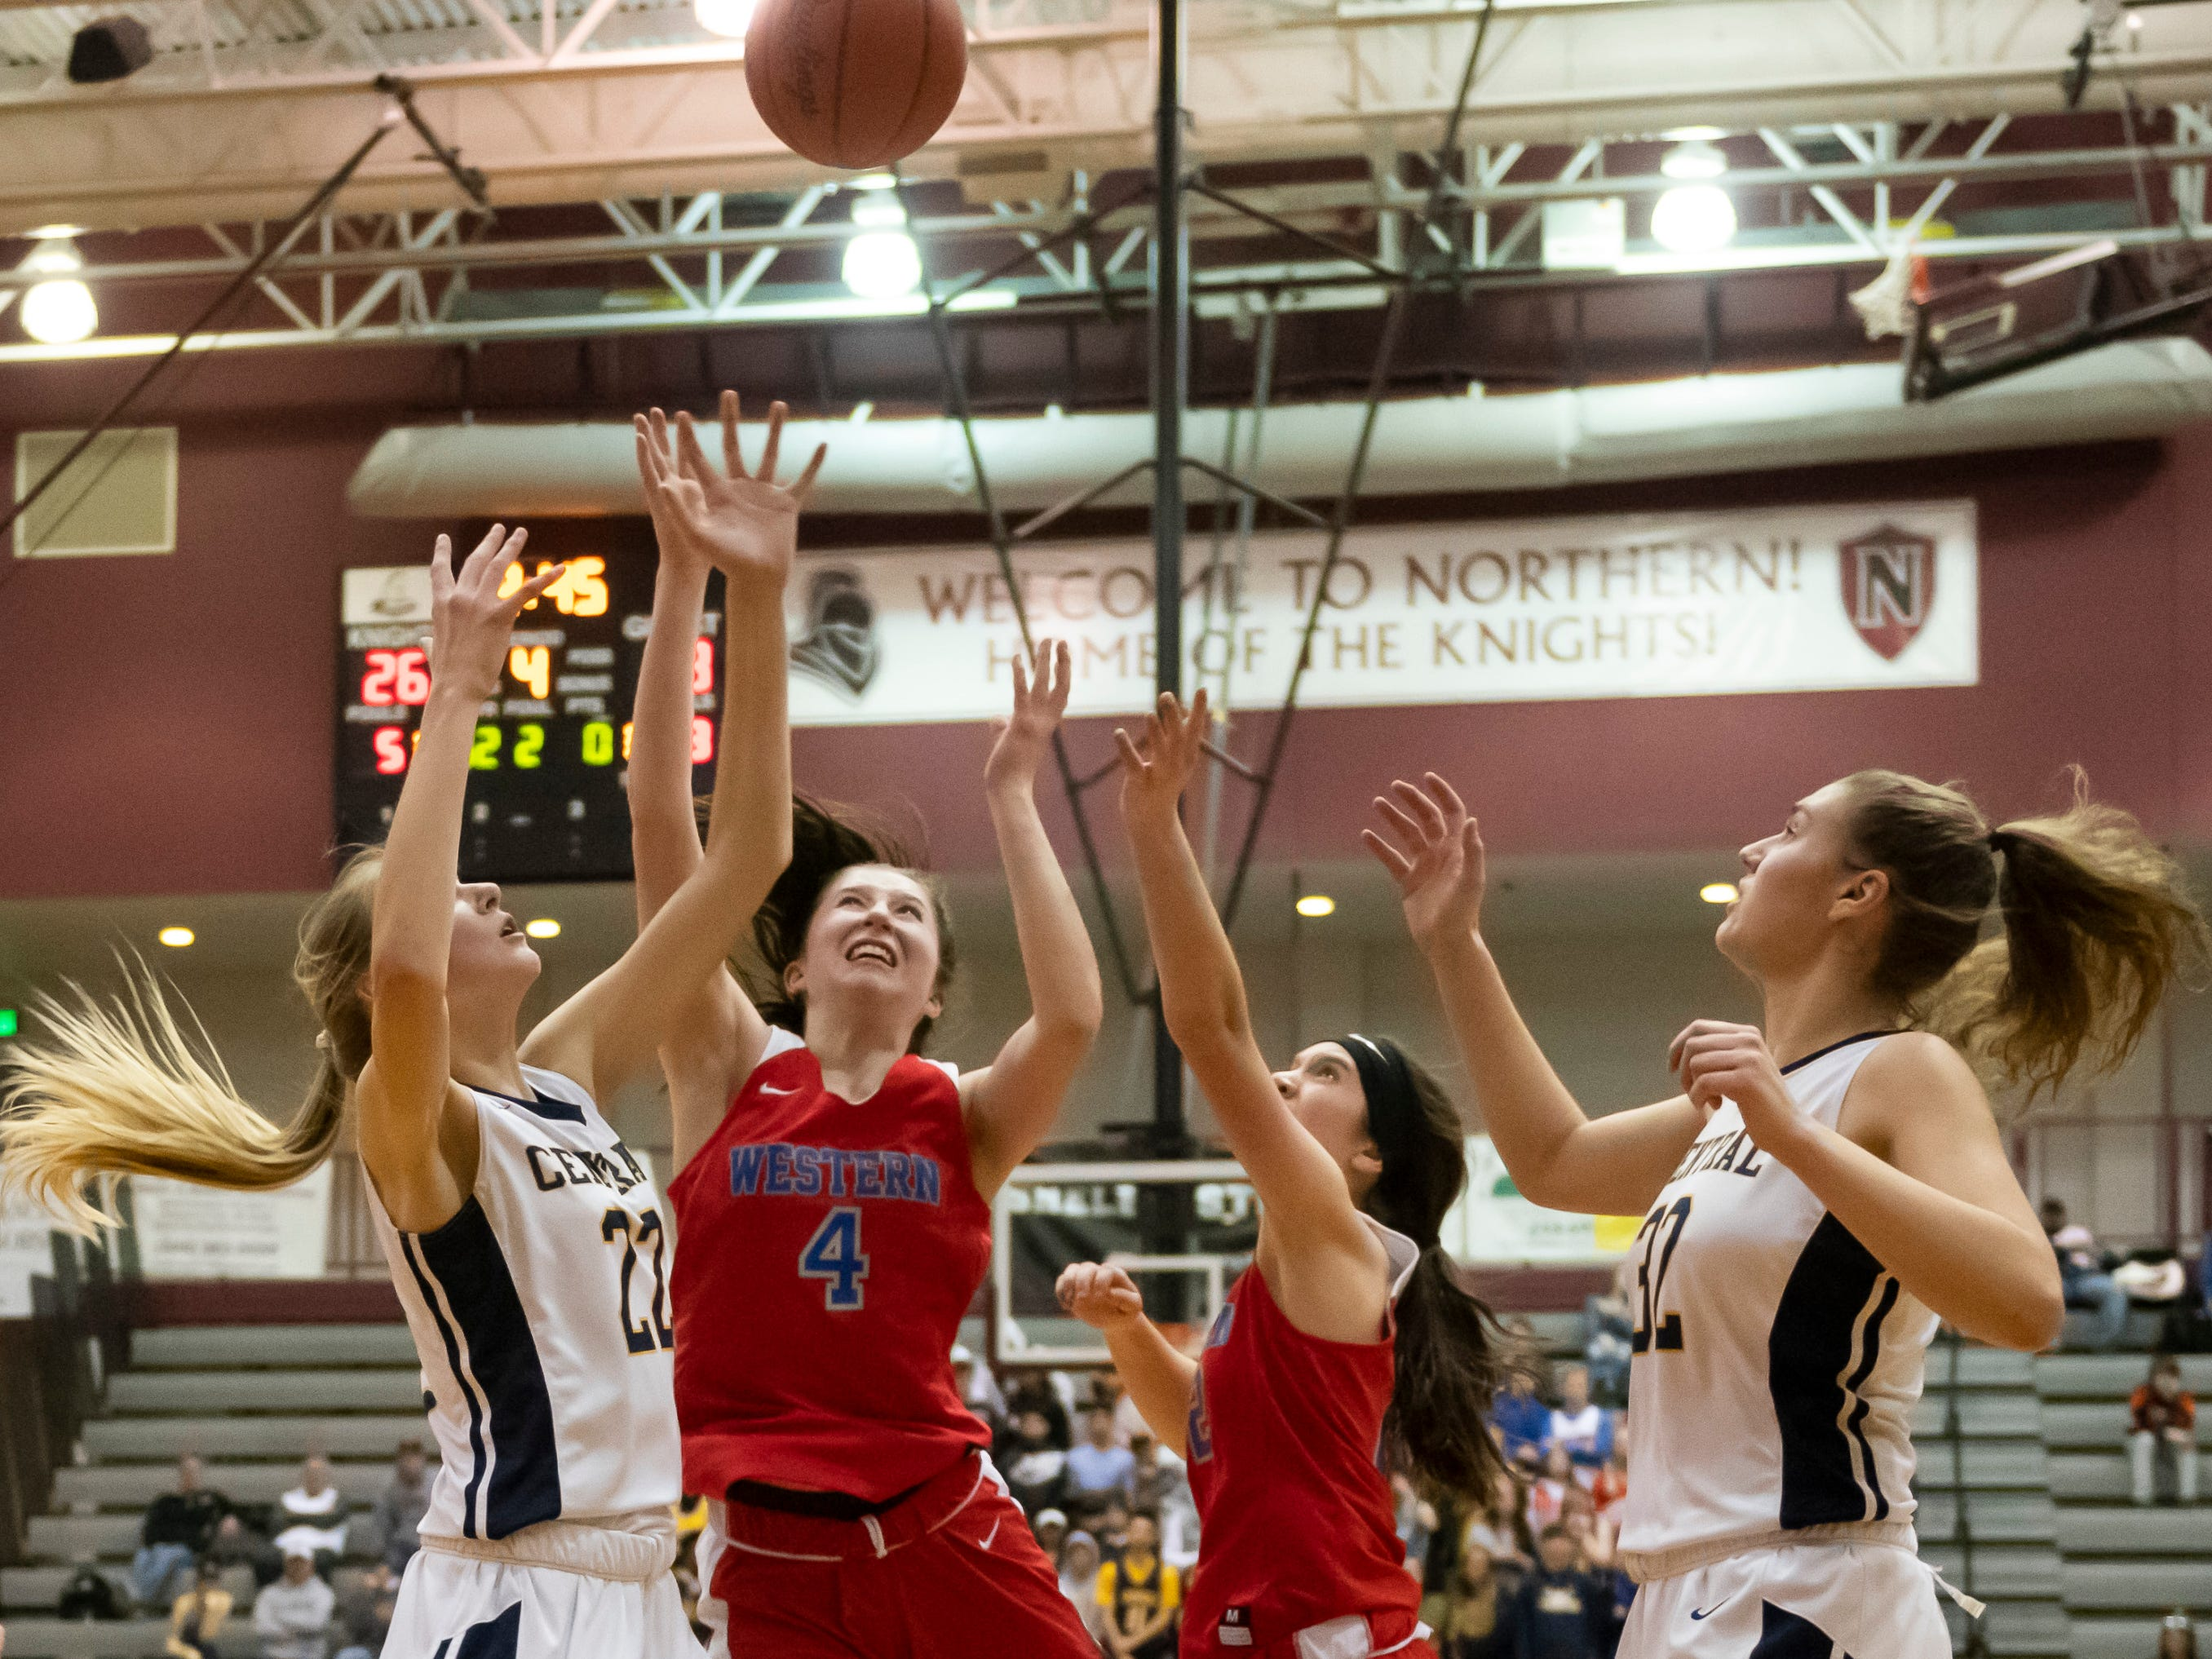 Walled Lake Western and Walled Lake Central battle for a rebound during the district 8 girls basketball district tournament at Walled Lake Northern high school, in Commerce Twp., March 4, 2019.